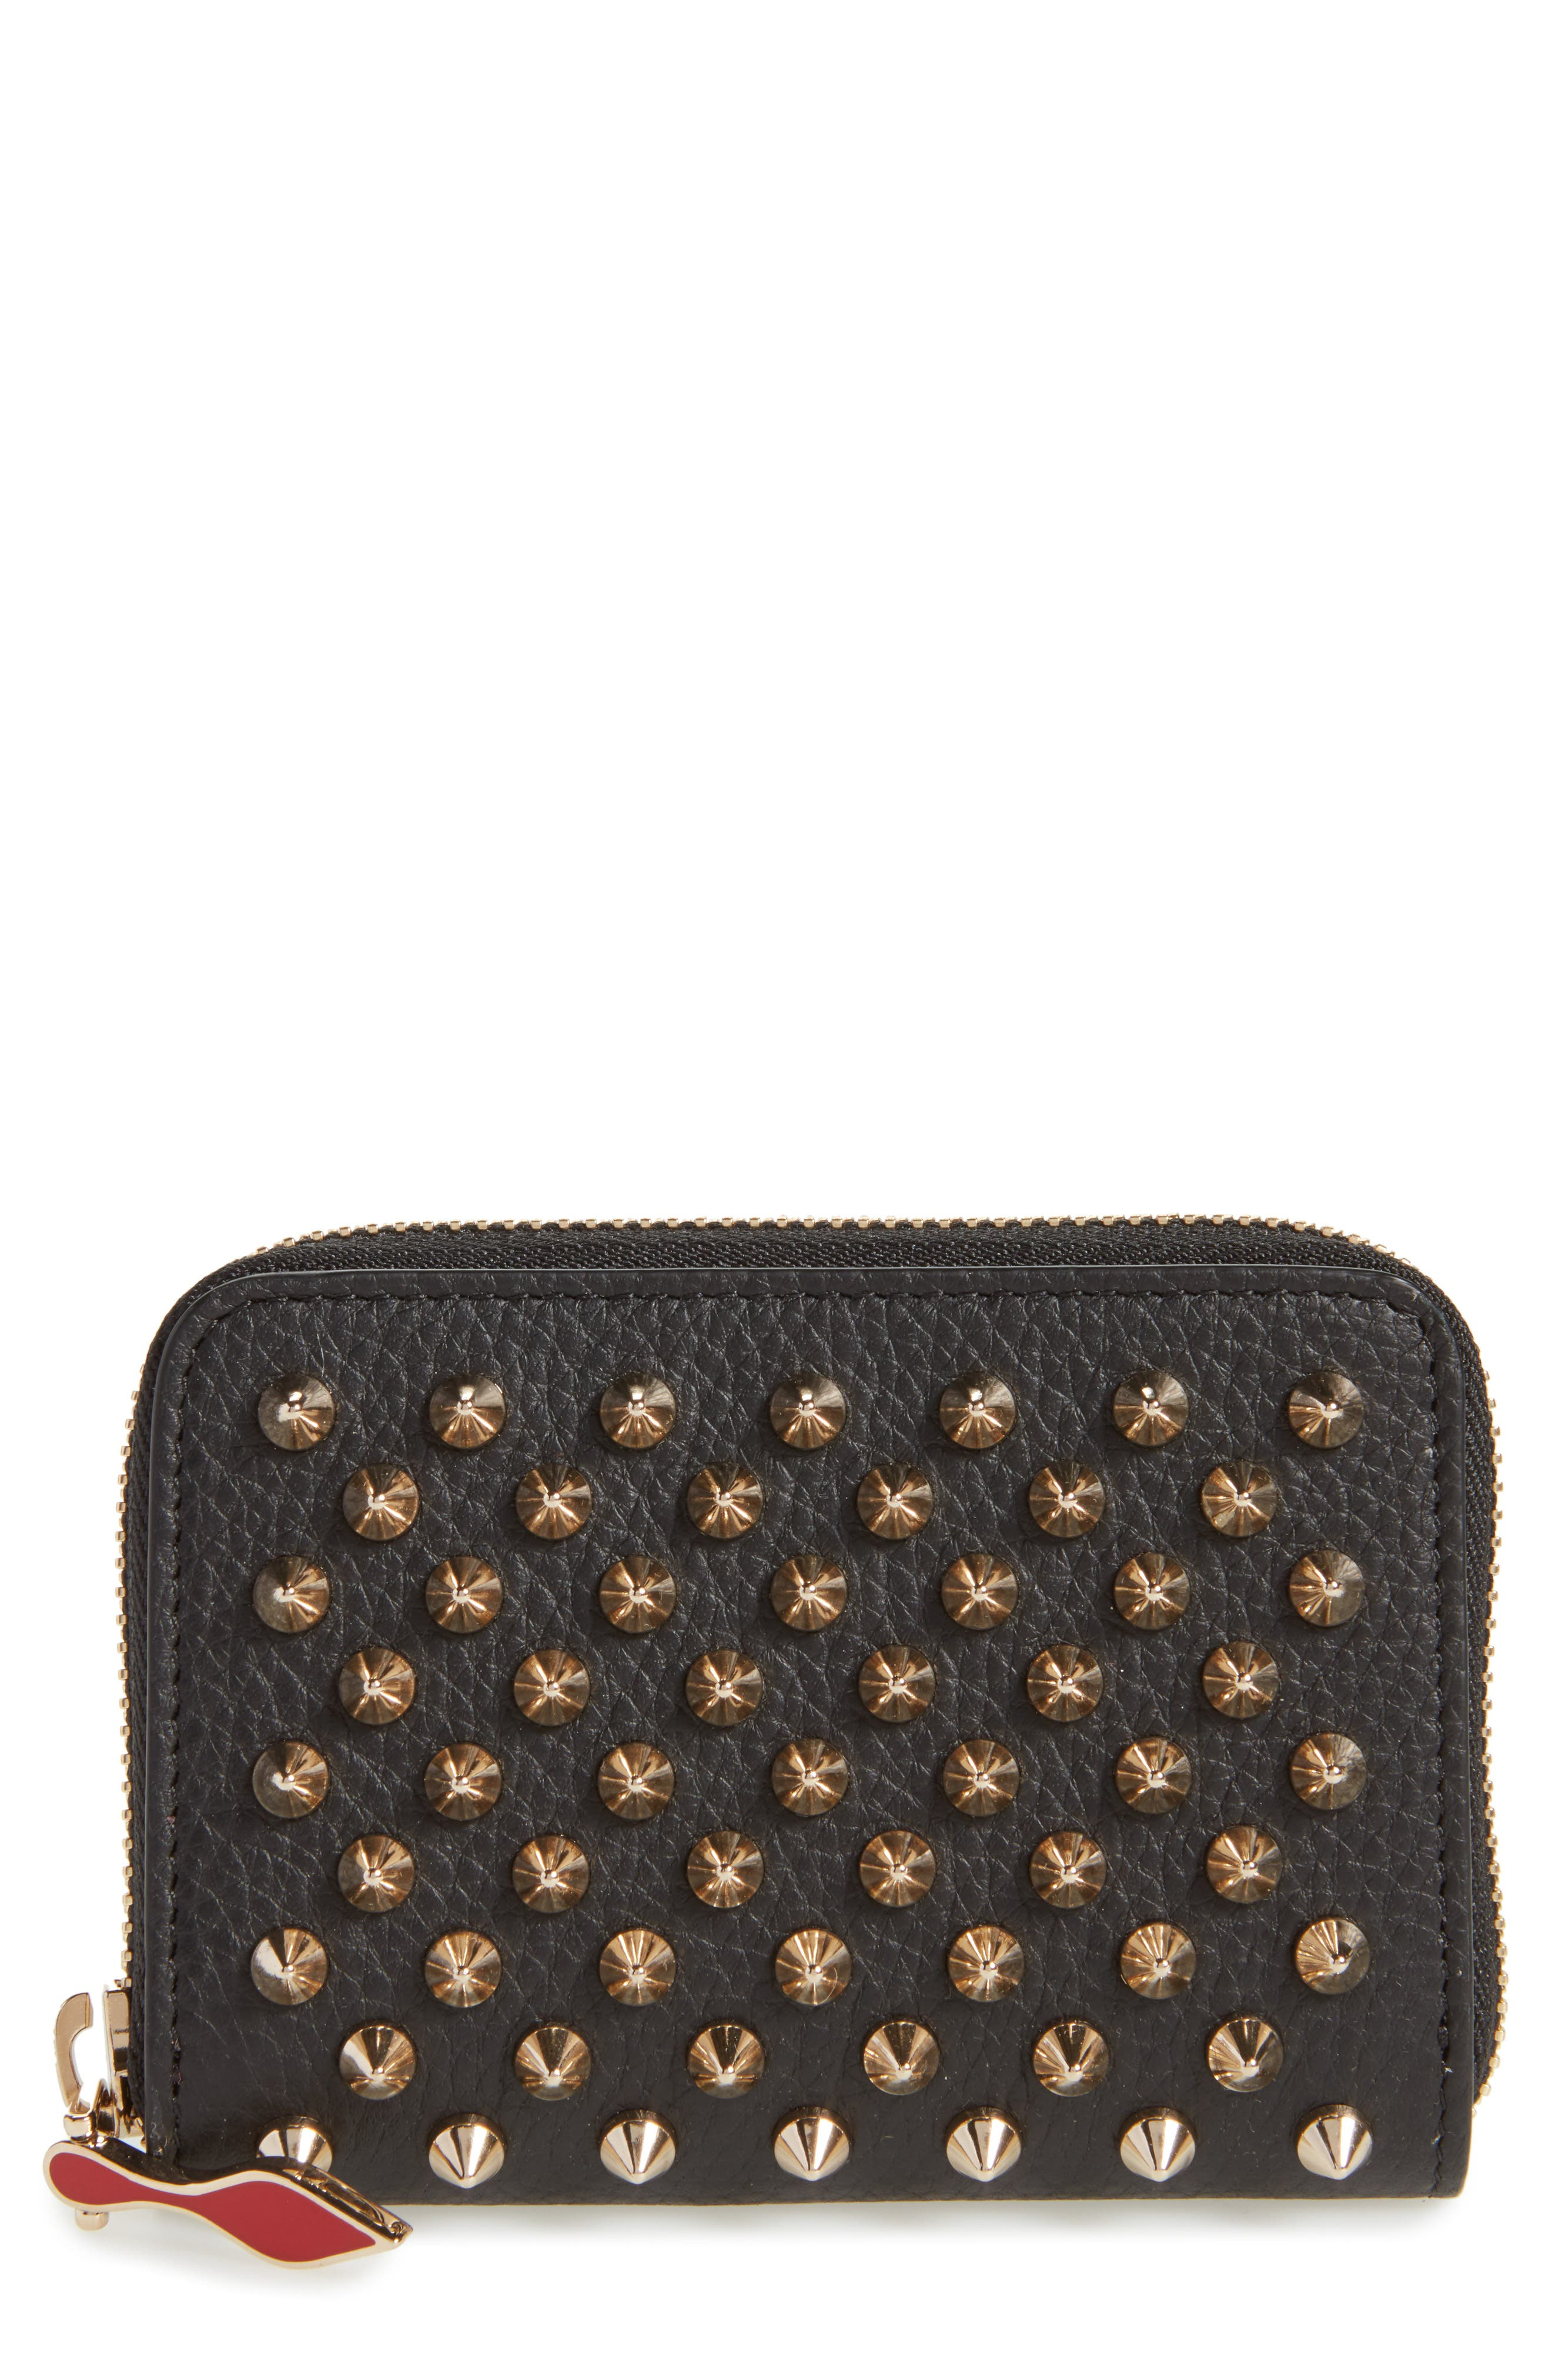 CHRISTIAN LOUBOUTIN Panettone Leather Coin Purse, Main, color, BLACK/ GOLD